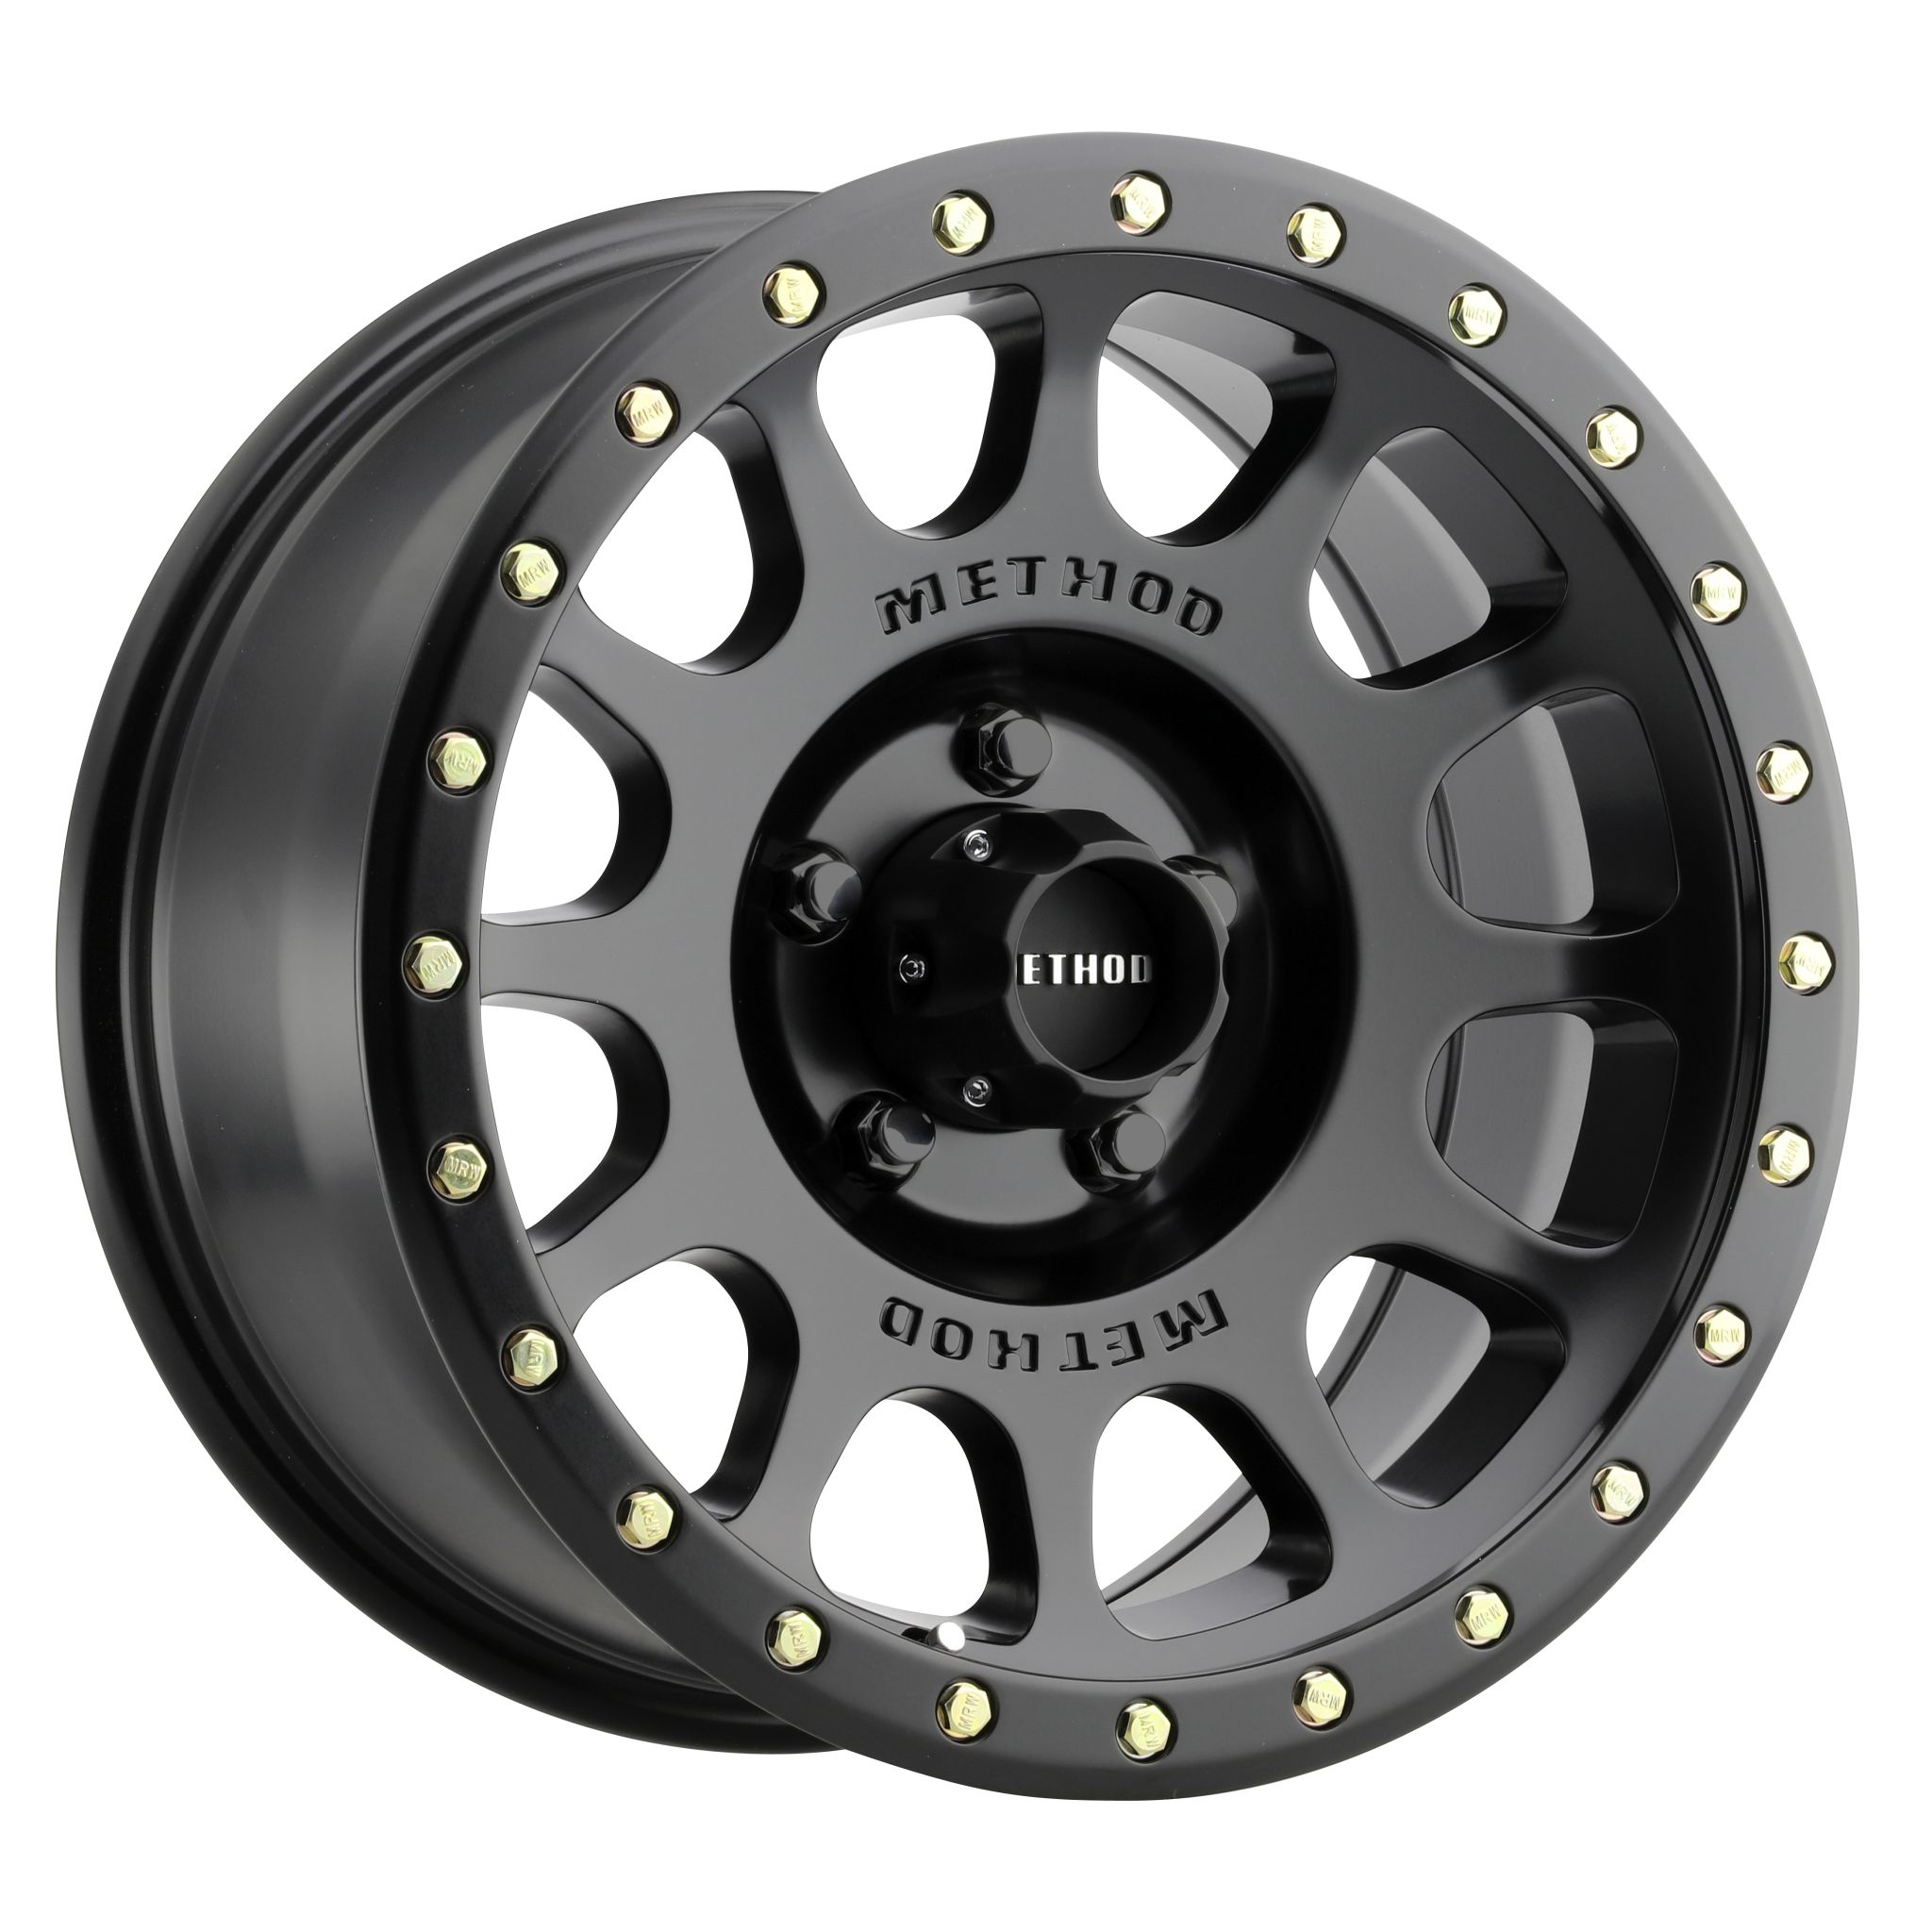 Method 305 NV, 18x9, +25mm Offset, 5x150, 116.5mm Centerbore, Matte Black